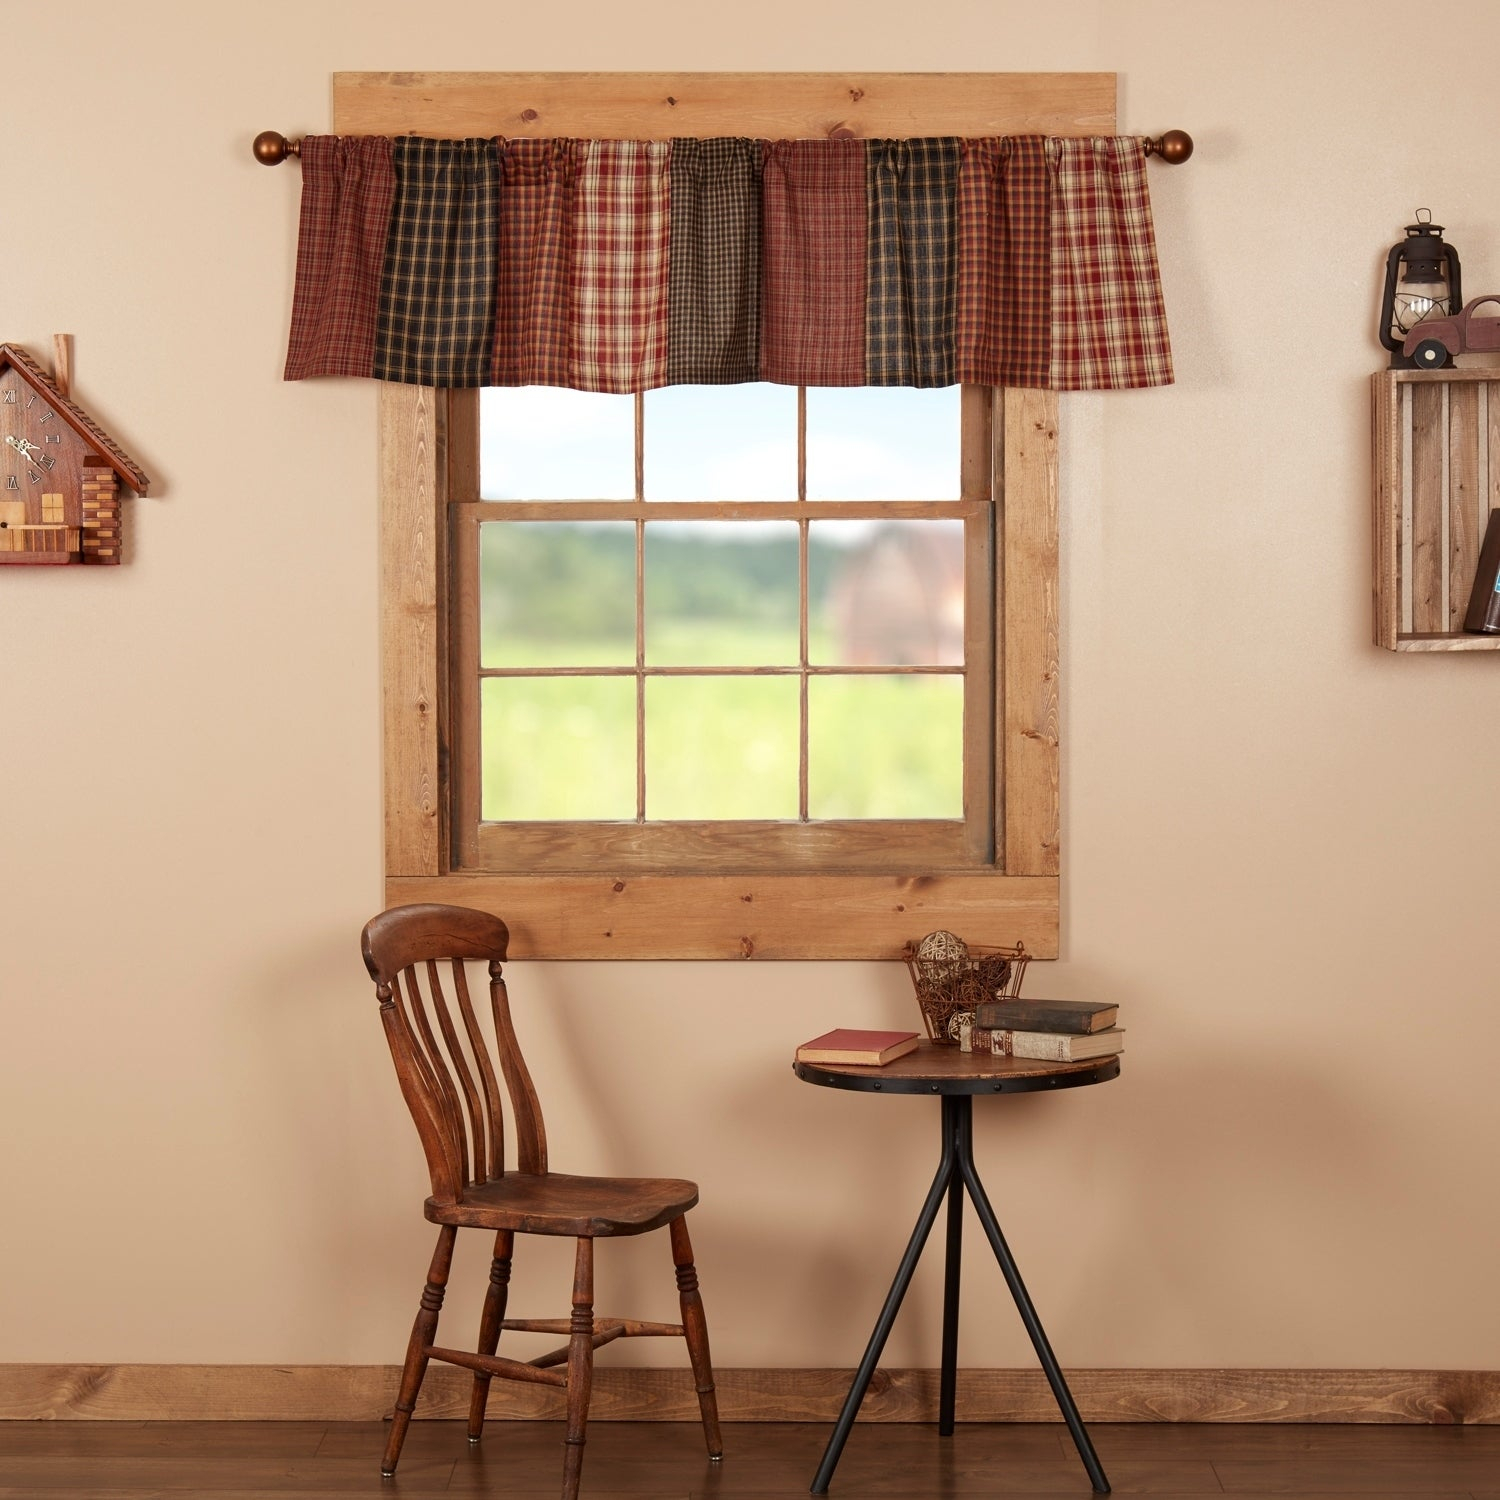 Red Rustic Kitchen Curtains Vhc Beckham Patchwork Valance Rod Pocket Cotton With Regard To Red Rustic Kitchen Curtains (Gallery 1 of 20)